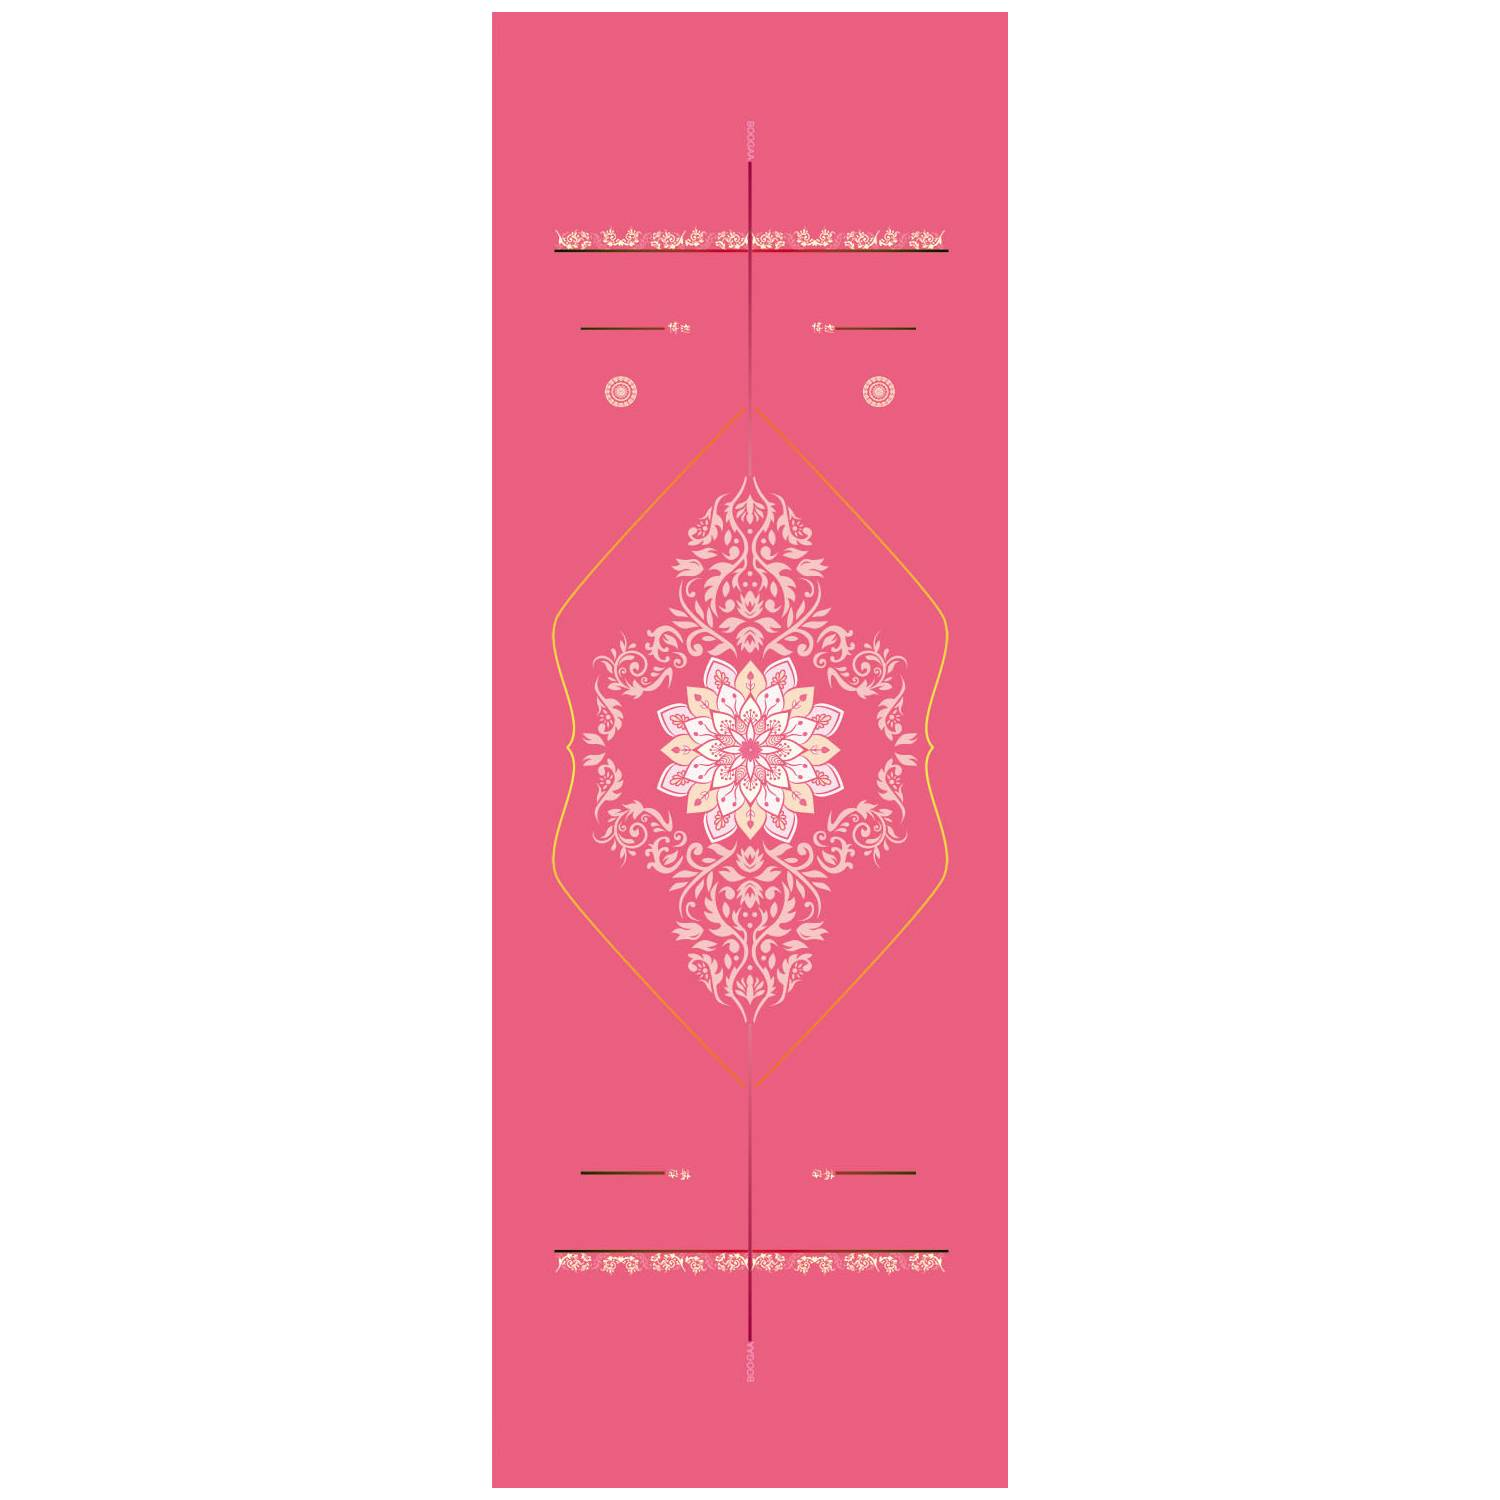 183x63cm Portable Microfiber Yoga Towel Slimming Sports Exercise Yoga Mat Towel Pilates Towel Mat Anti Skid Gym Fitness Blanket